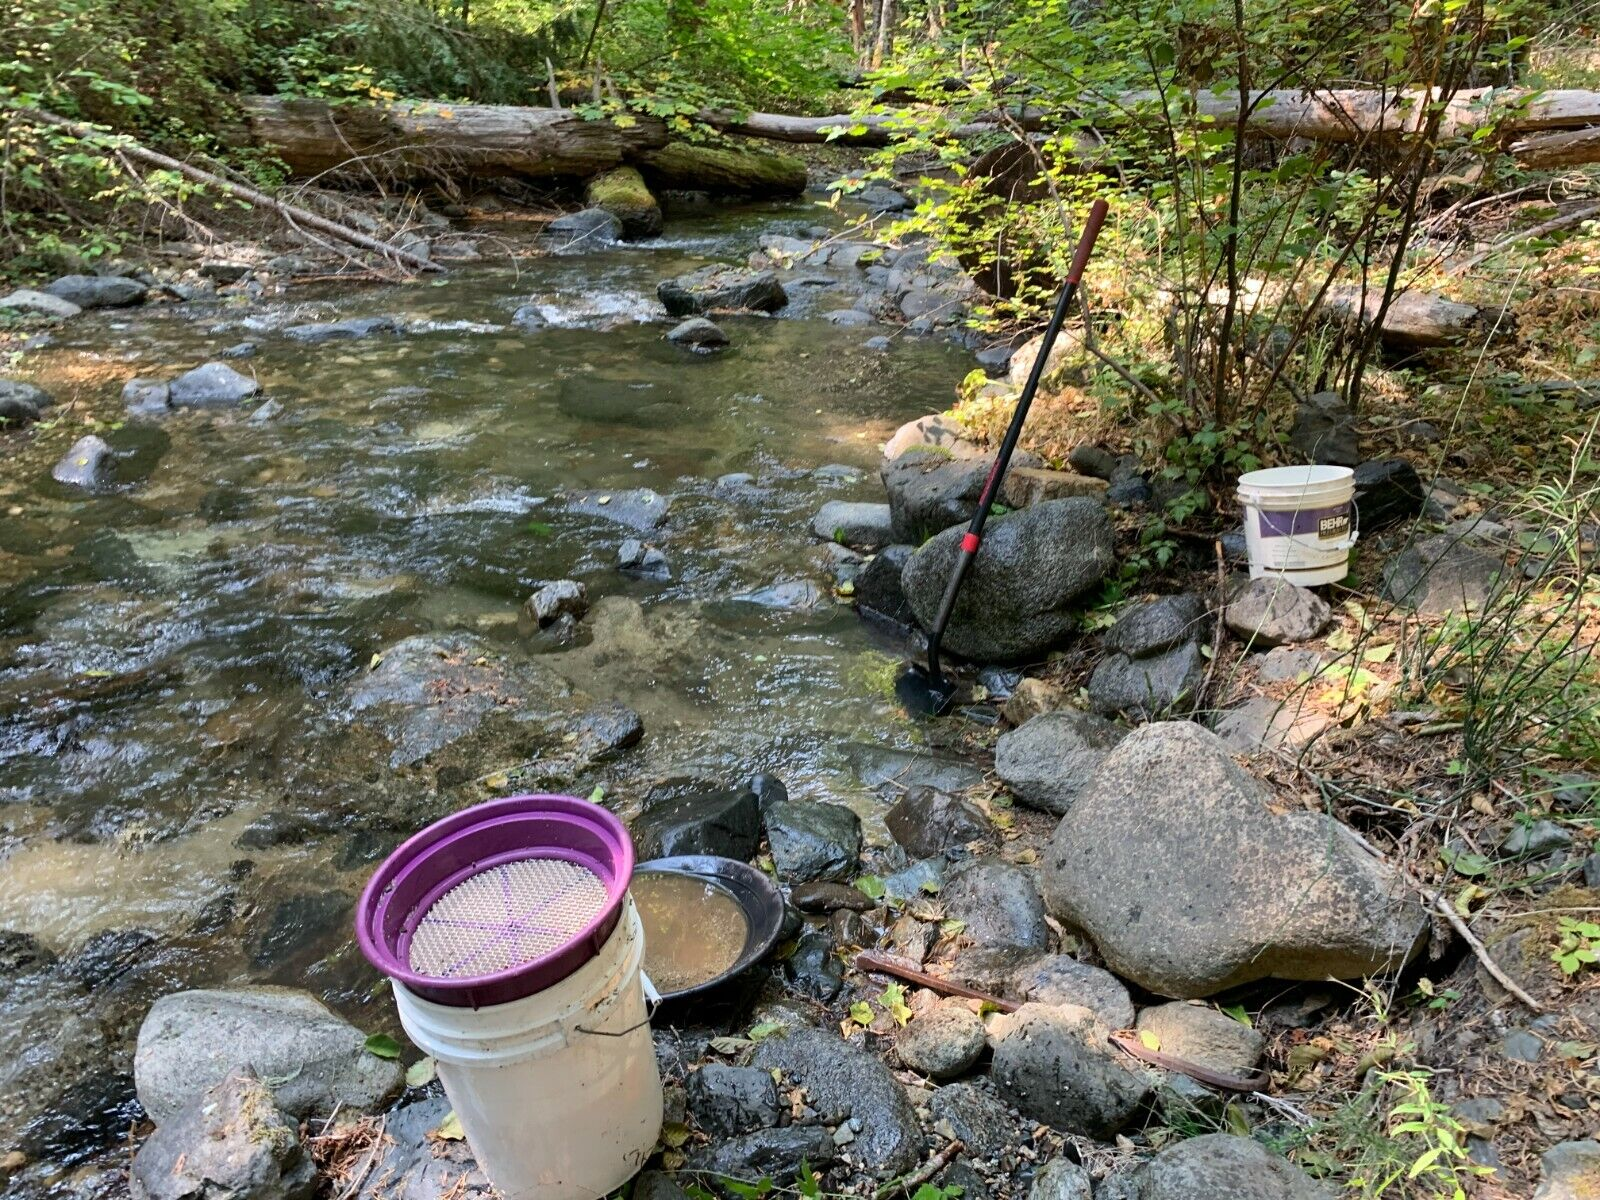 20 ACRE RECREATIONAL UNPATENTED PLACER GOLD MINING CLAIM - SOUTHERN OREGON - $1,775.00